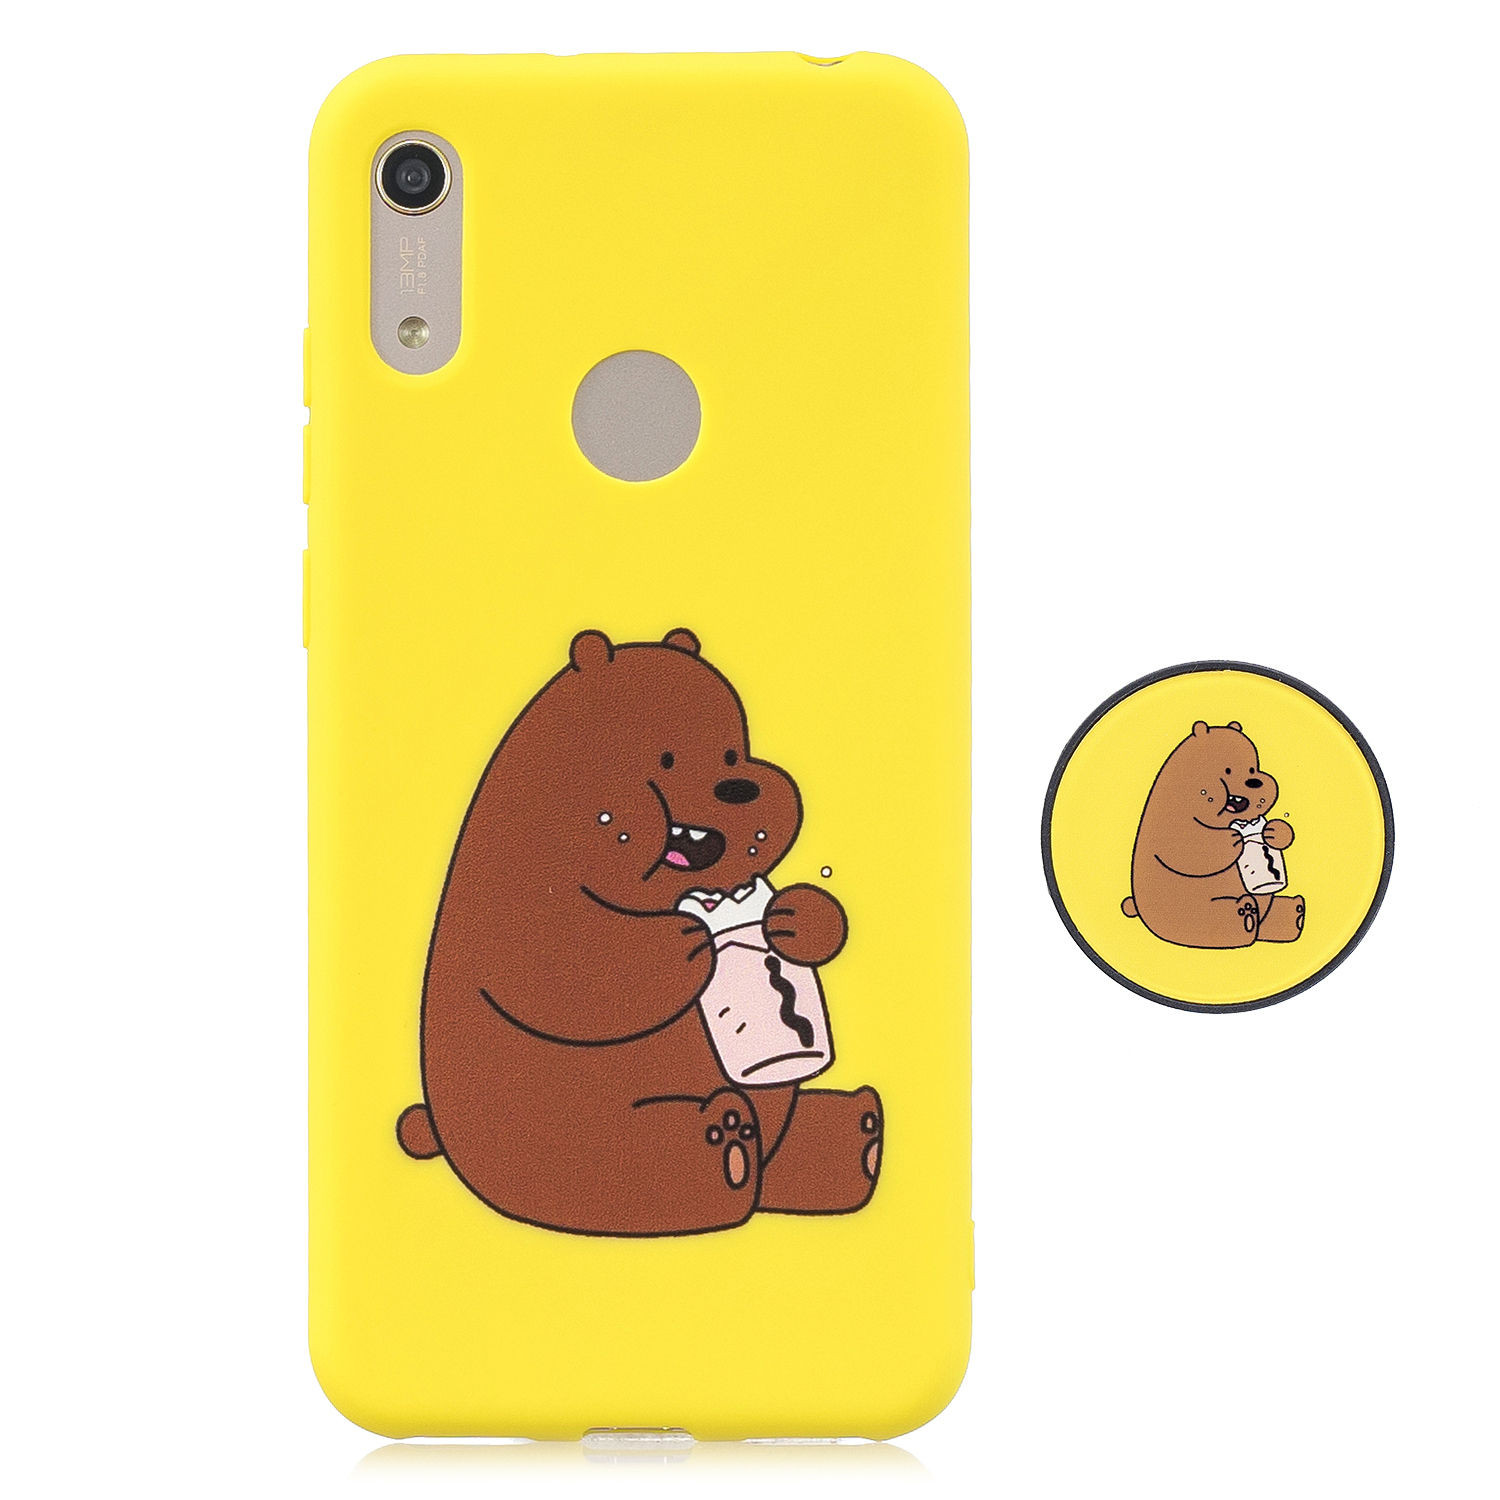 For HUAWEI Y6 2019 Flexible Stand Holder Case Soft TPU Full Cover Case Phone Cover Cute Phone Case 8